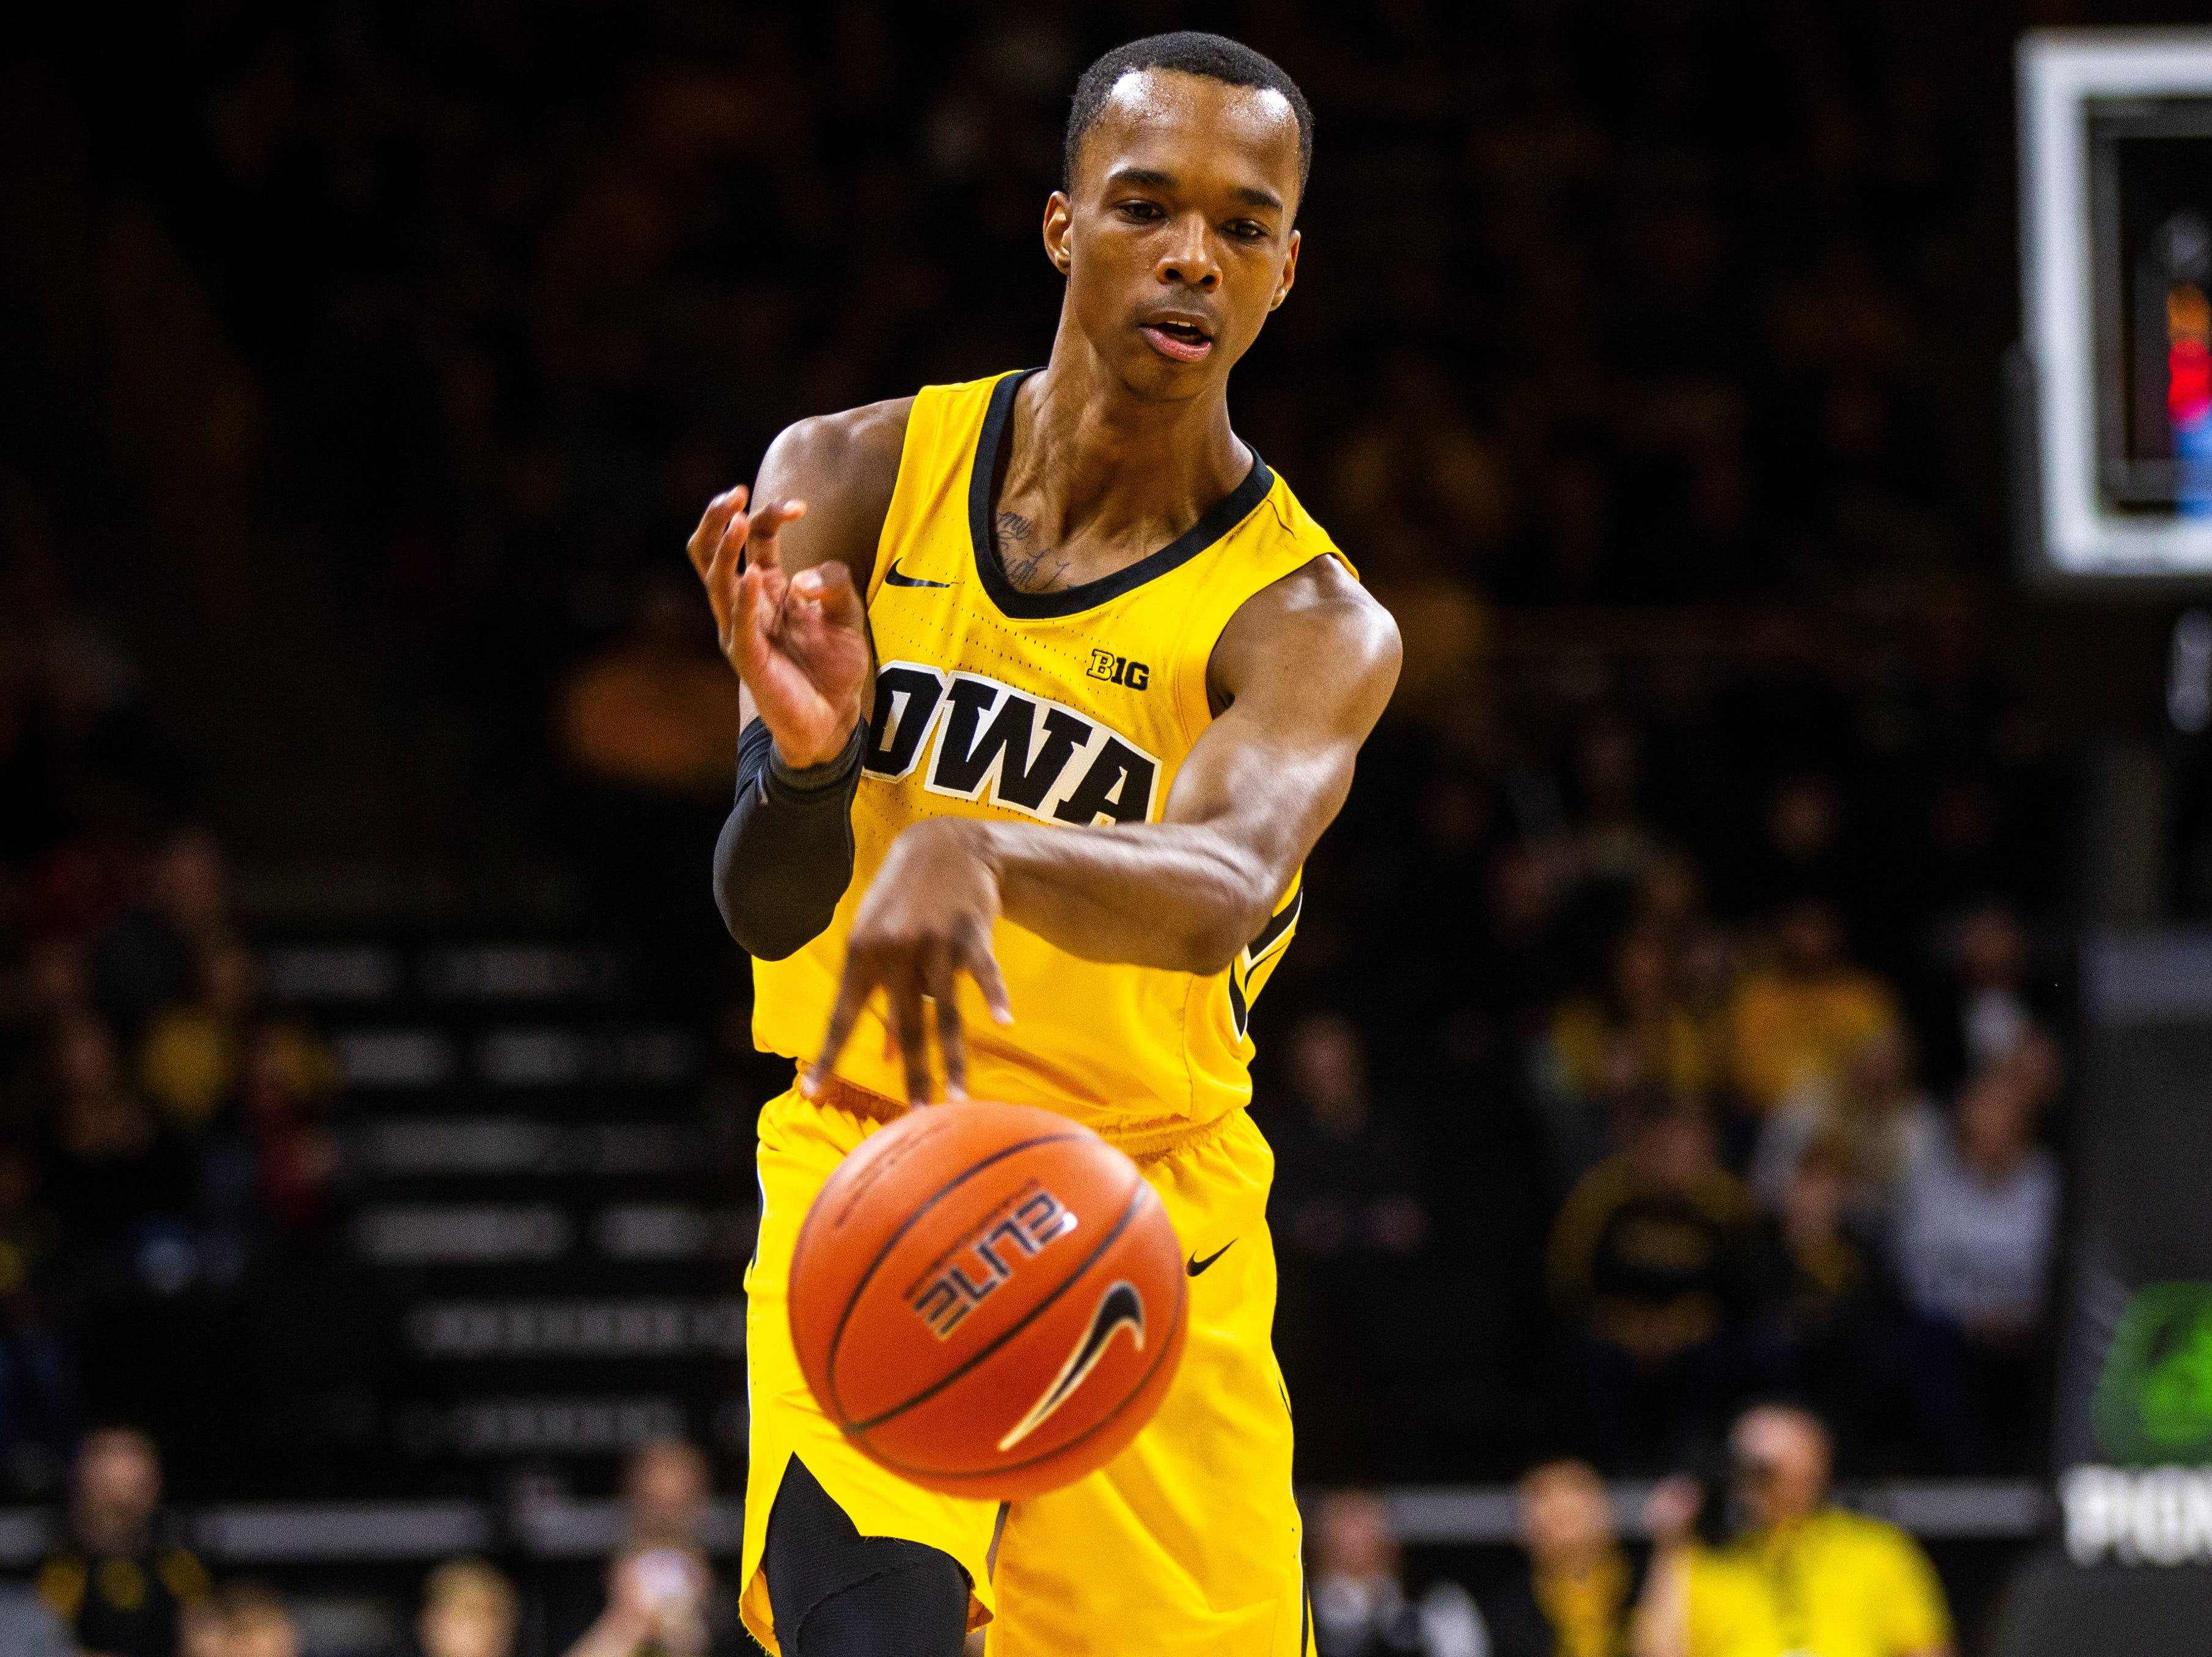 Iowa guard Maishe Dailey (1) passes to a teammate during a NCAA men's basketball game on Saturday, Dec. 22, 2018, at Carver-Hawkeye Arena in Iowa City.